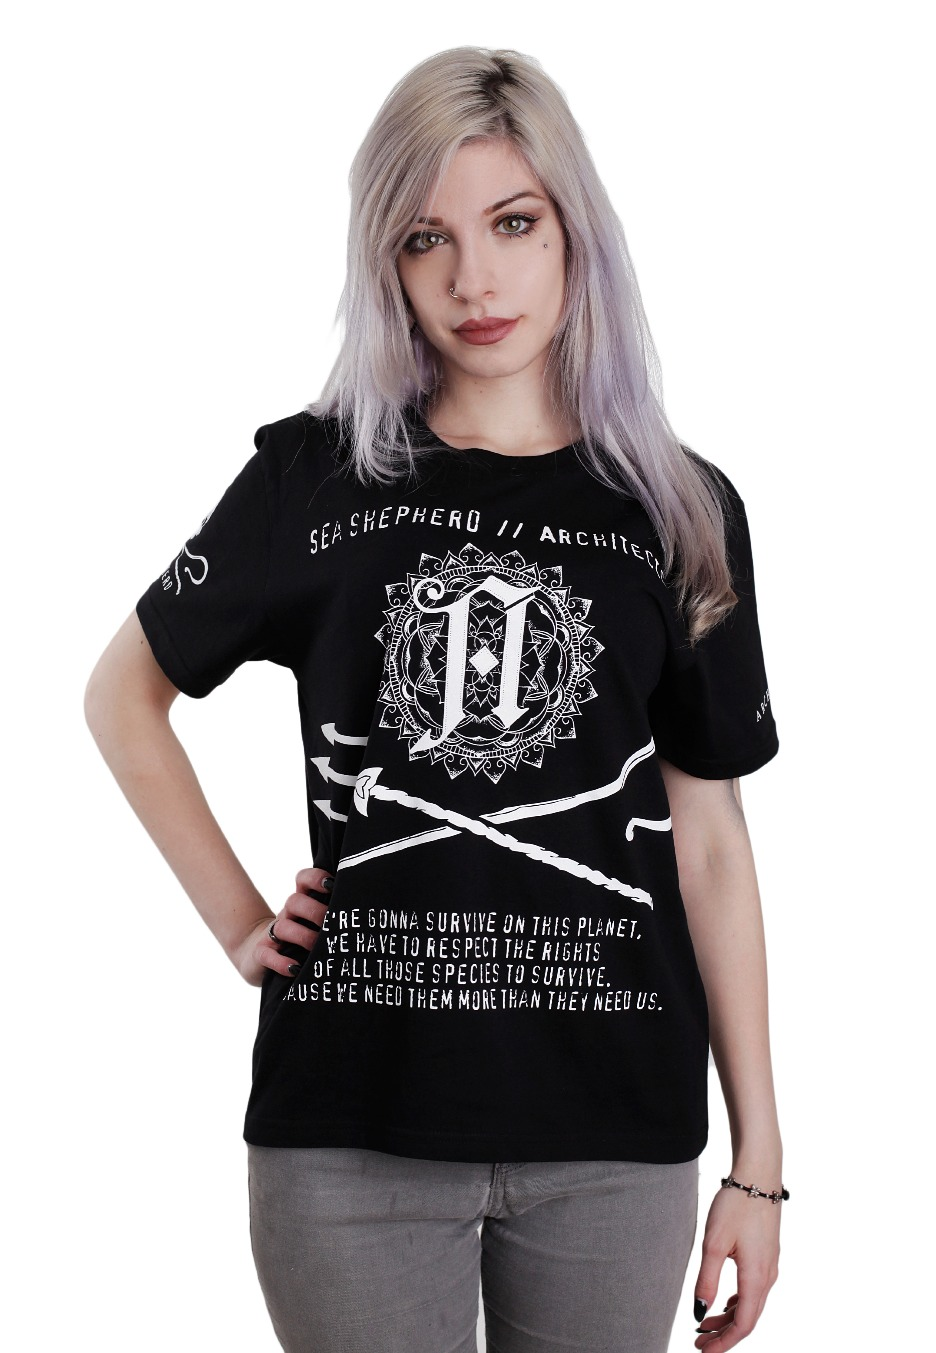 architects sea shepherd collab t shirt hardcore. Black Bedroom Furniture Sets. Home Design Ideas